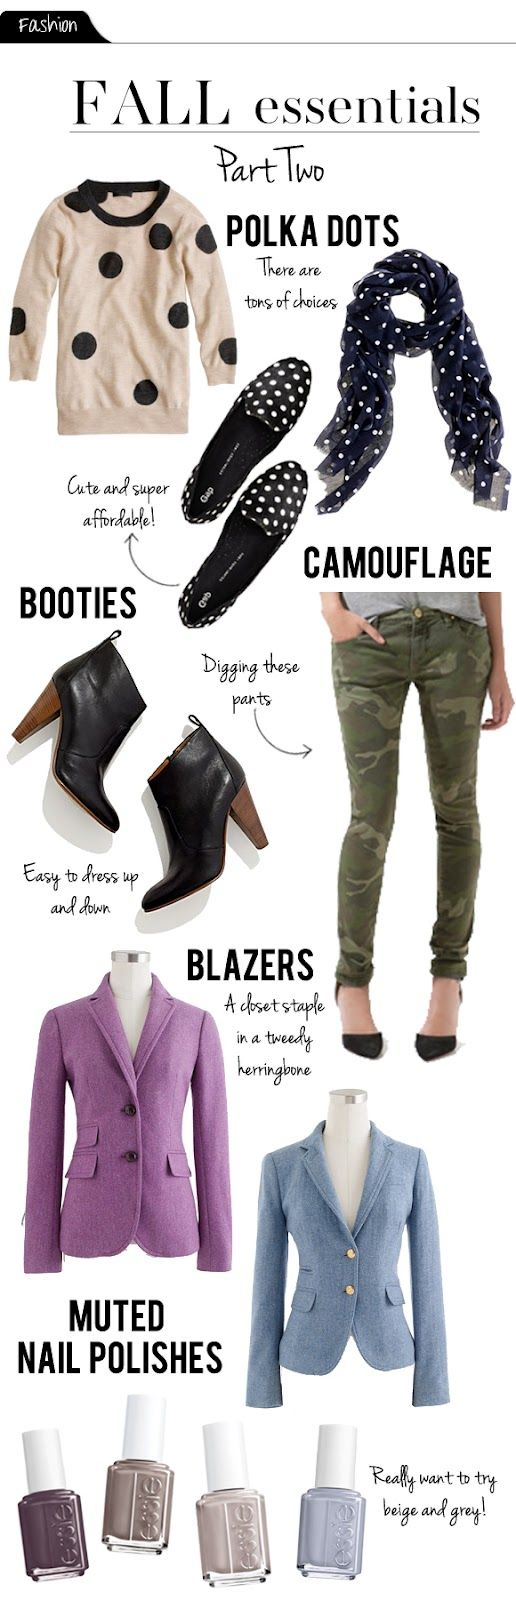 The Vault Files: Fashion file: Fall Essentials Part II